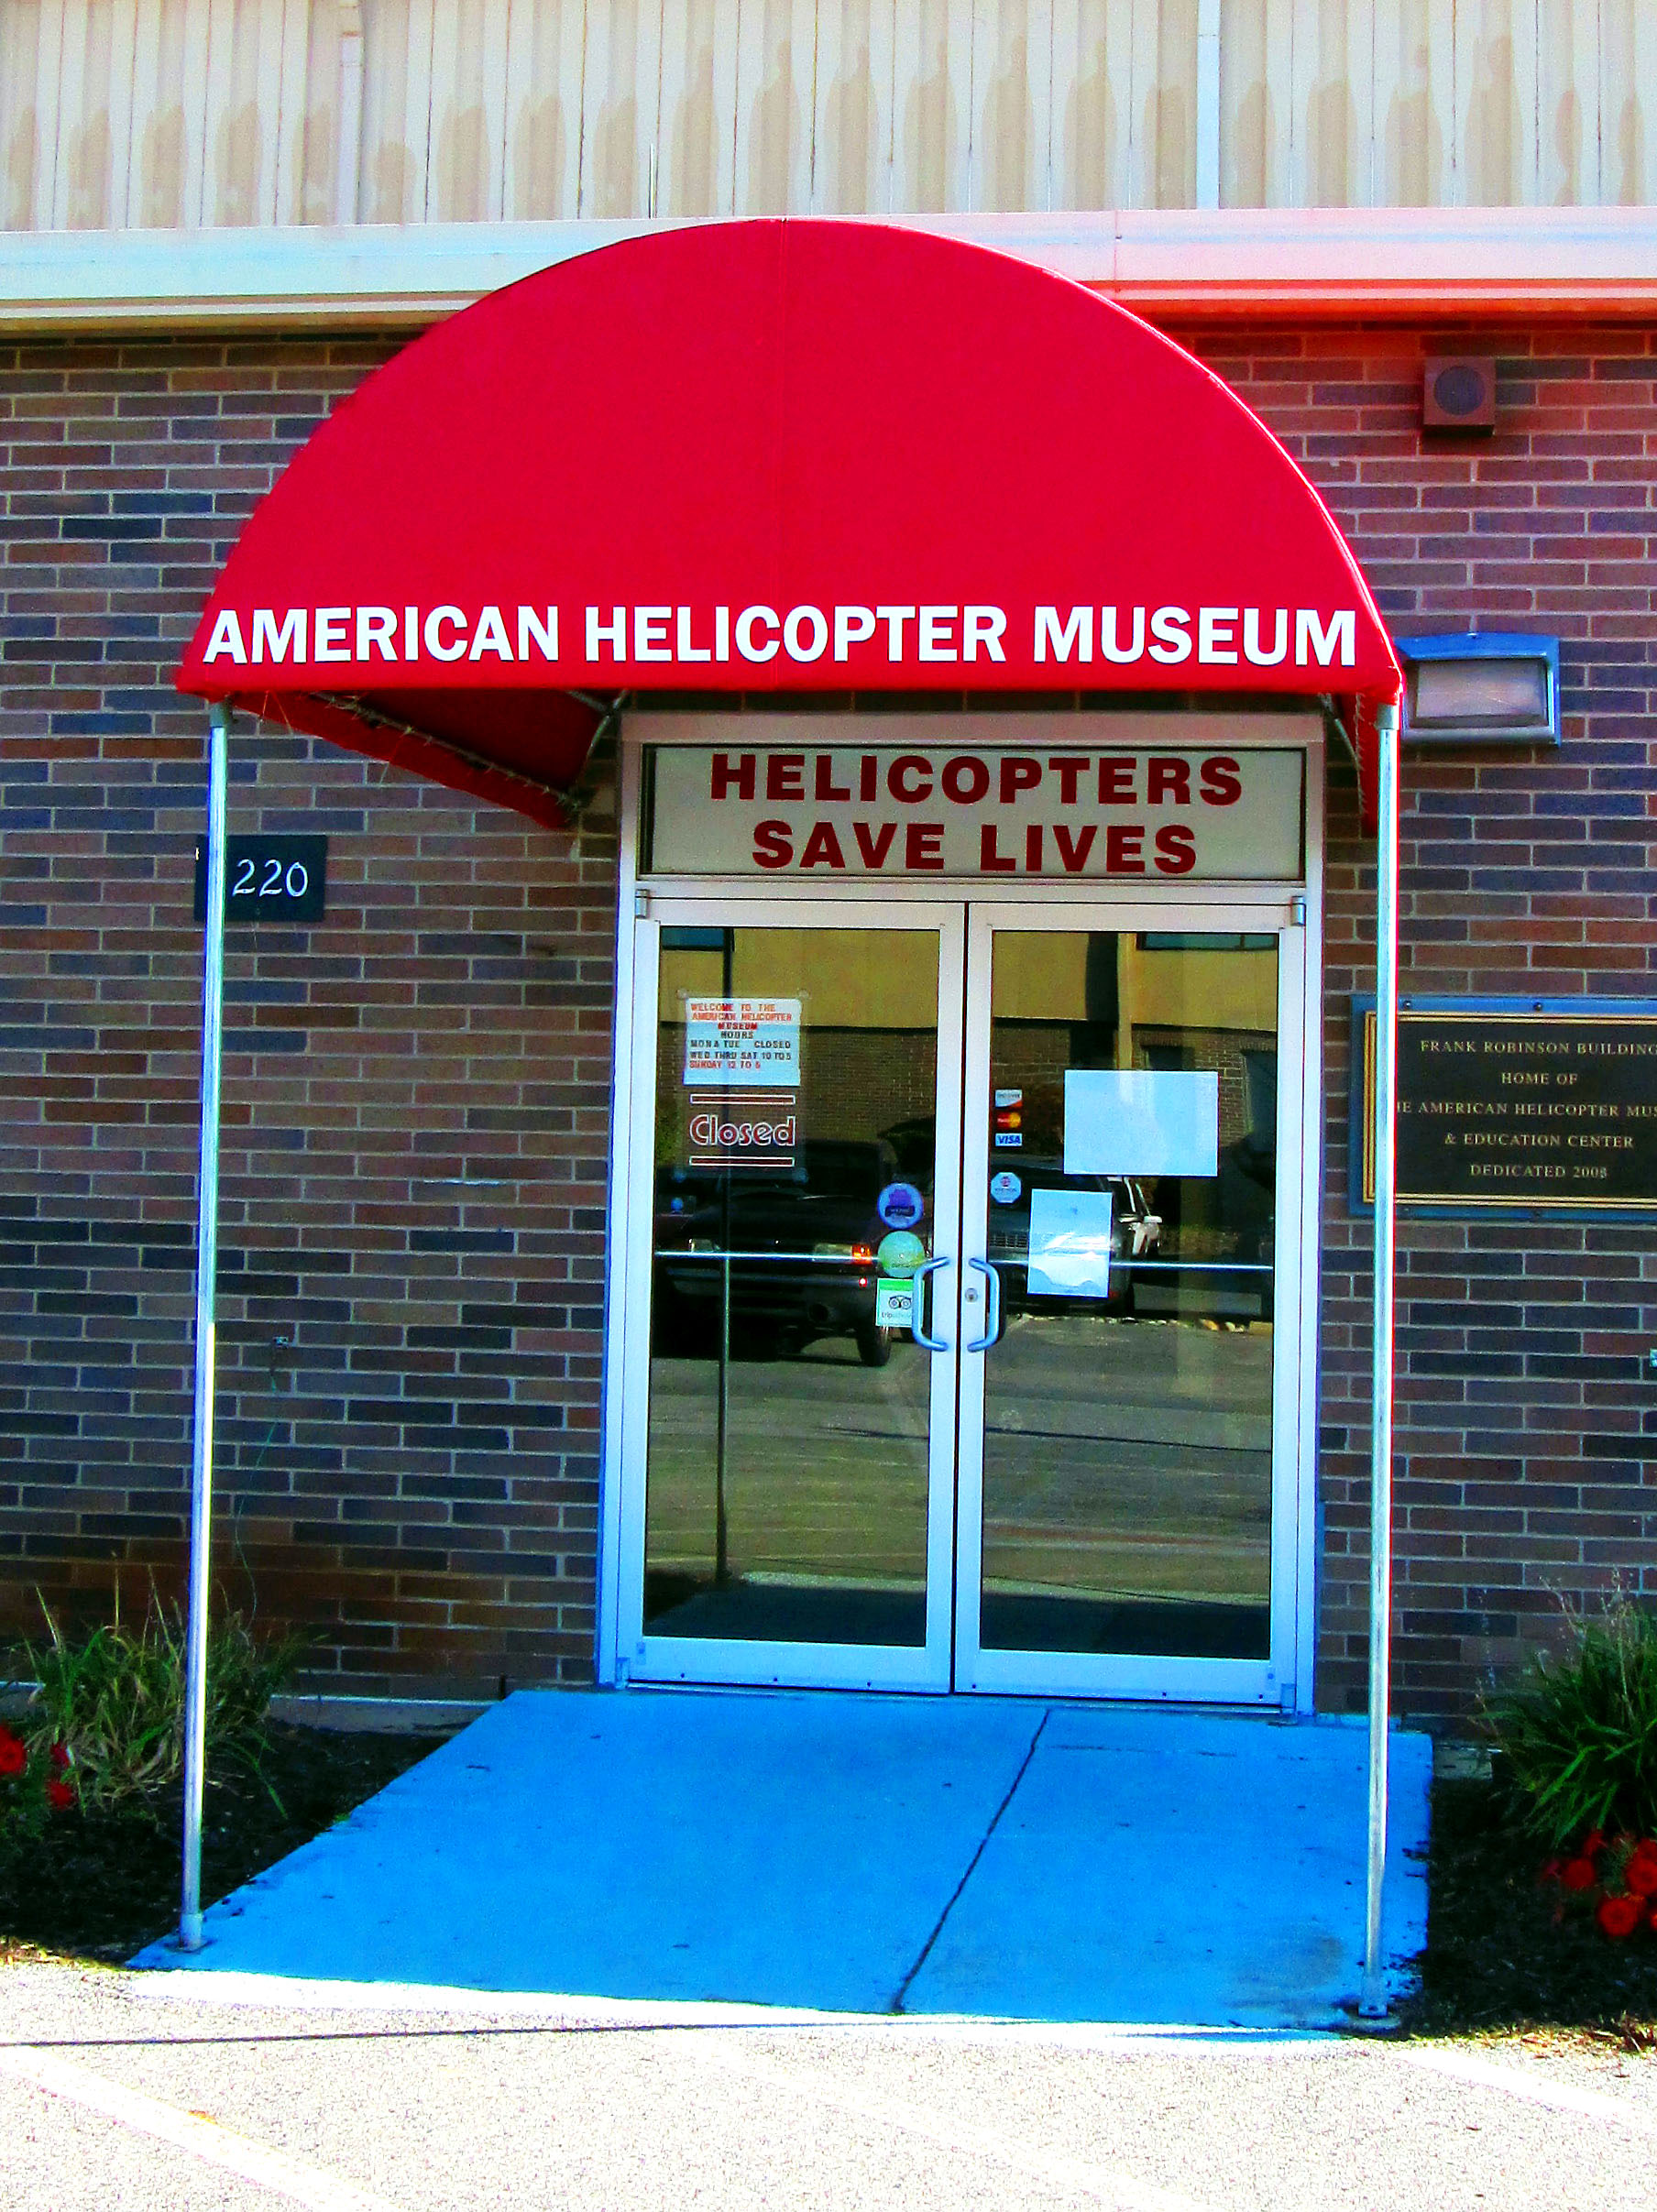 American Helicopter Museum In West Chester Pennsylvania